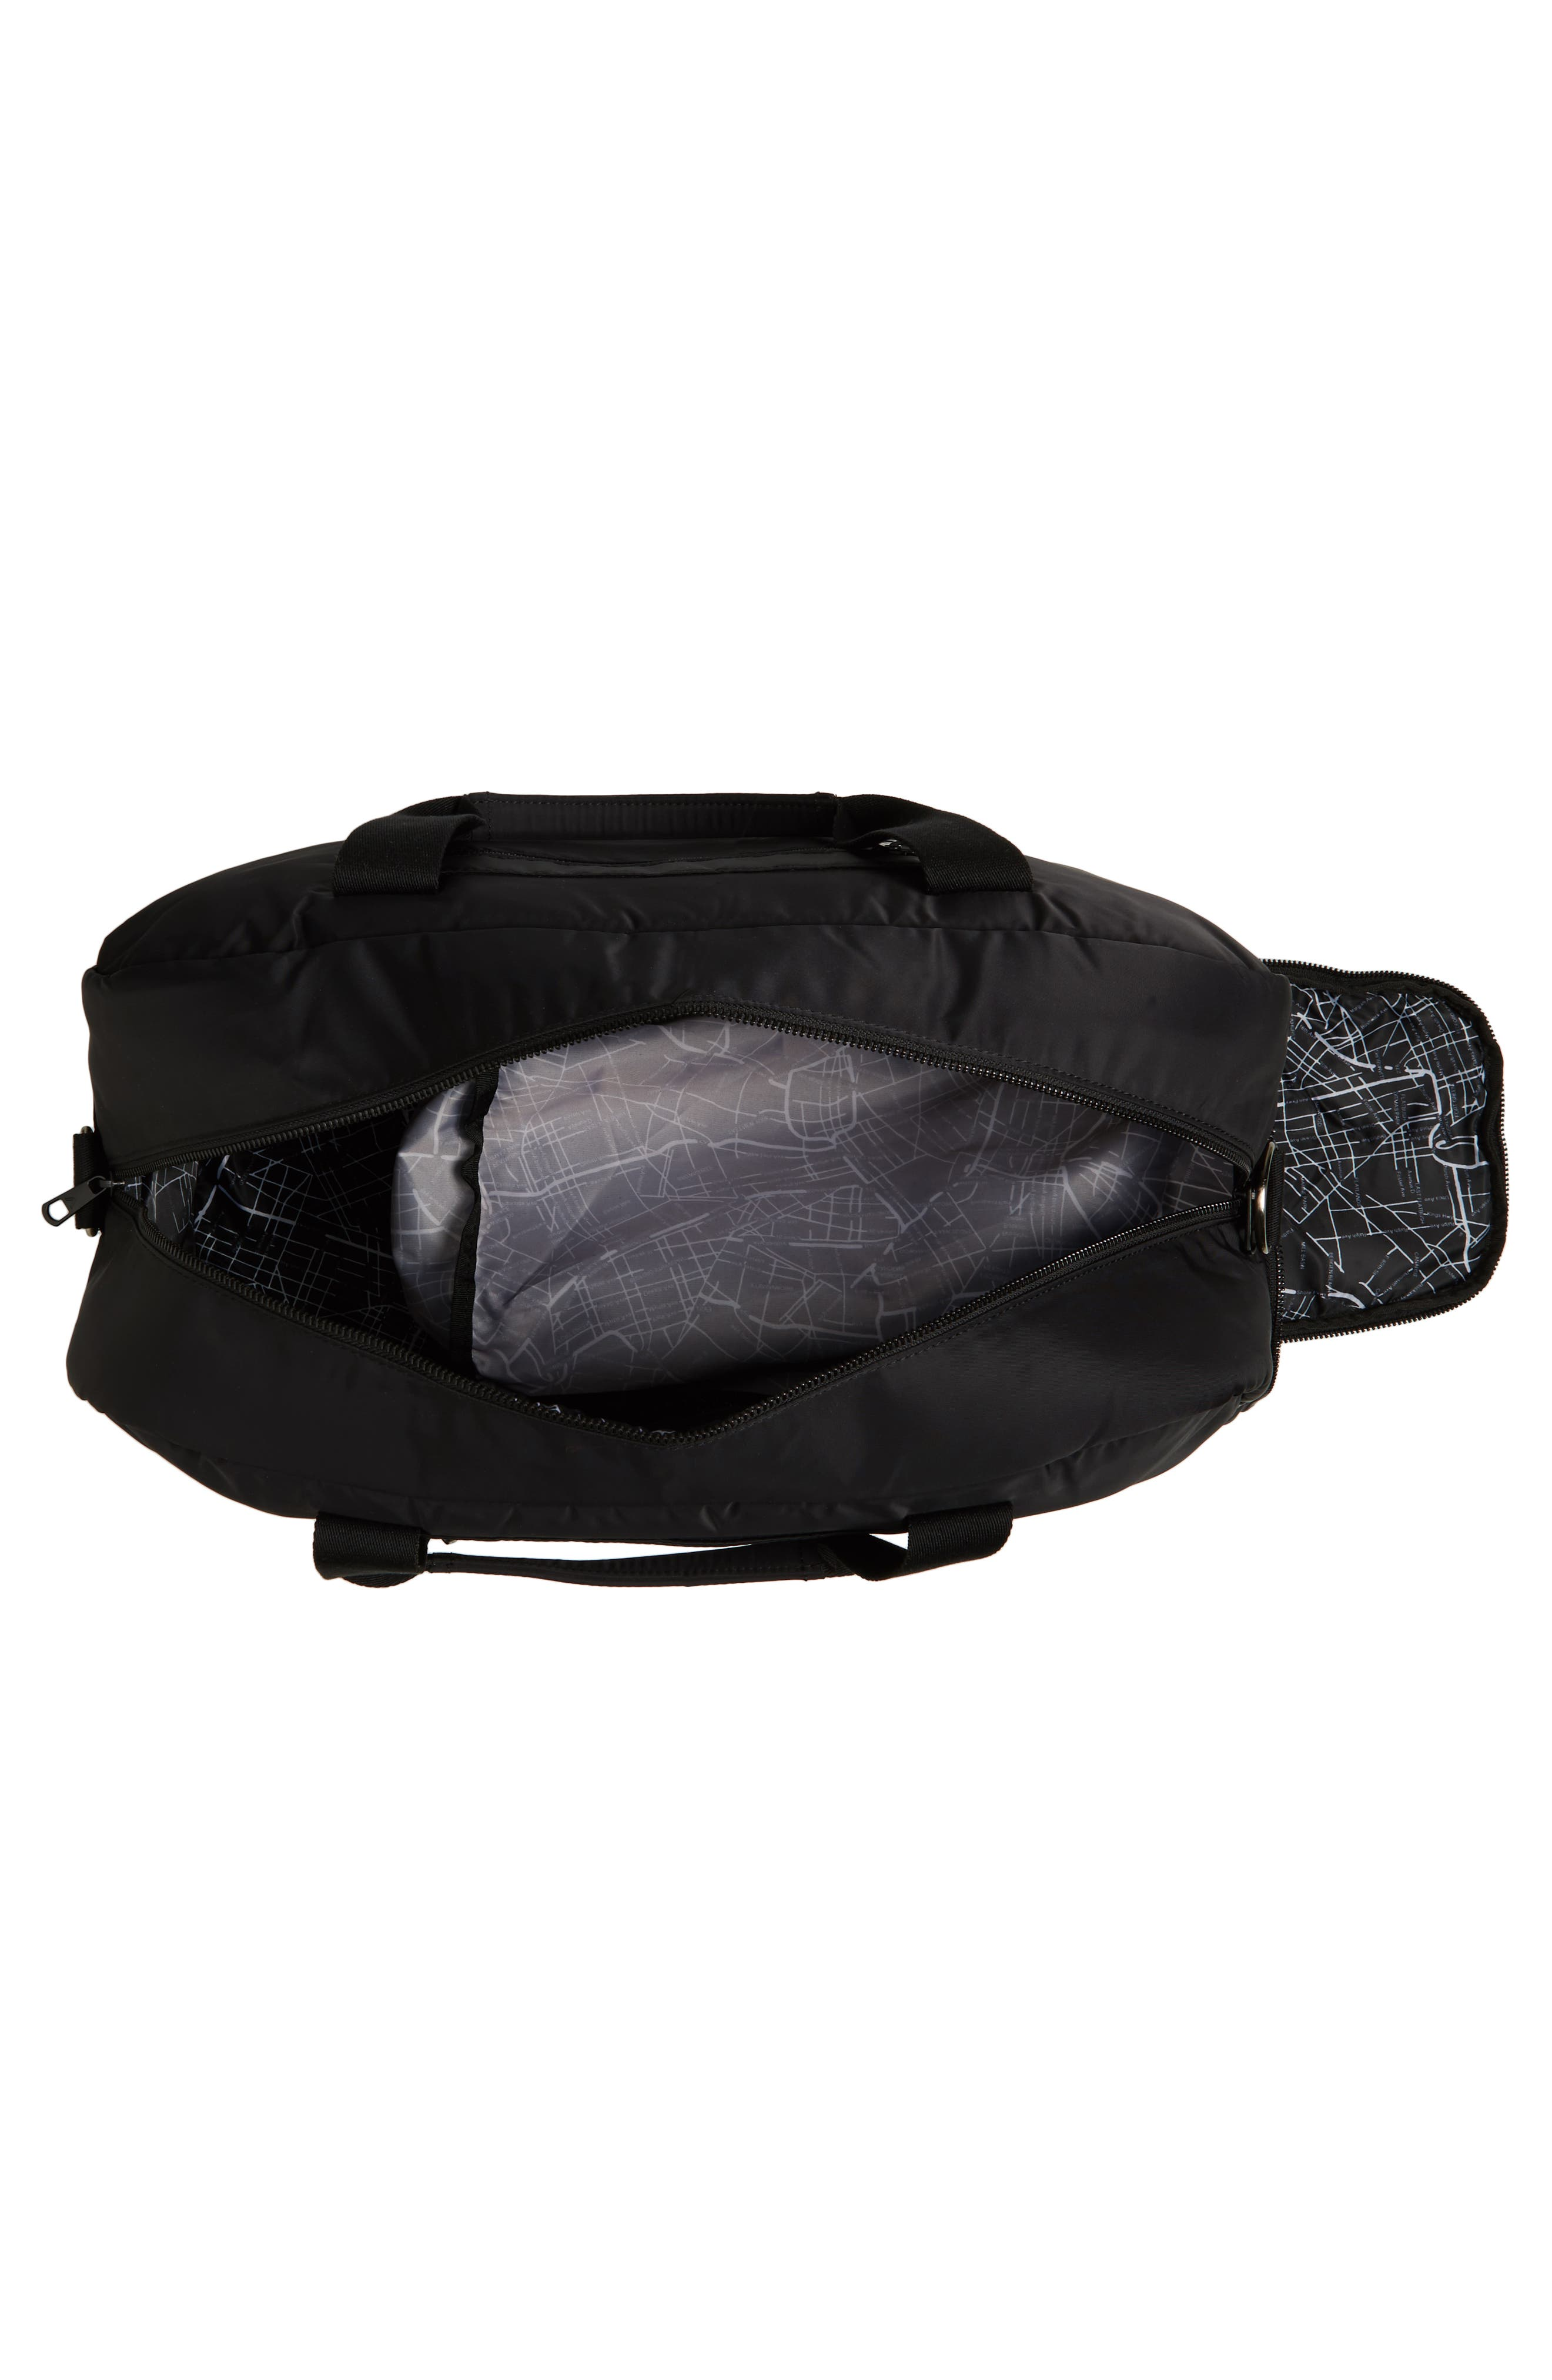 The Heights - Franklin Nylon Duffel Bag,                             Alternate thumbnail 4, color,                             Black